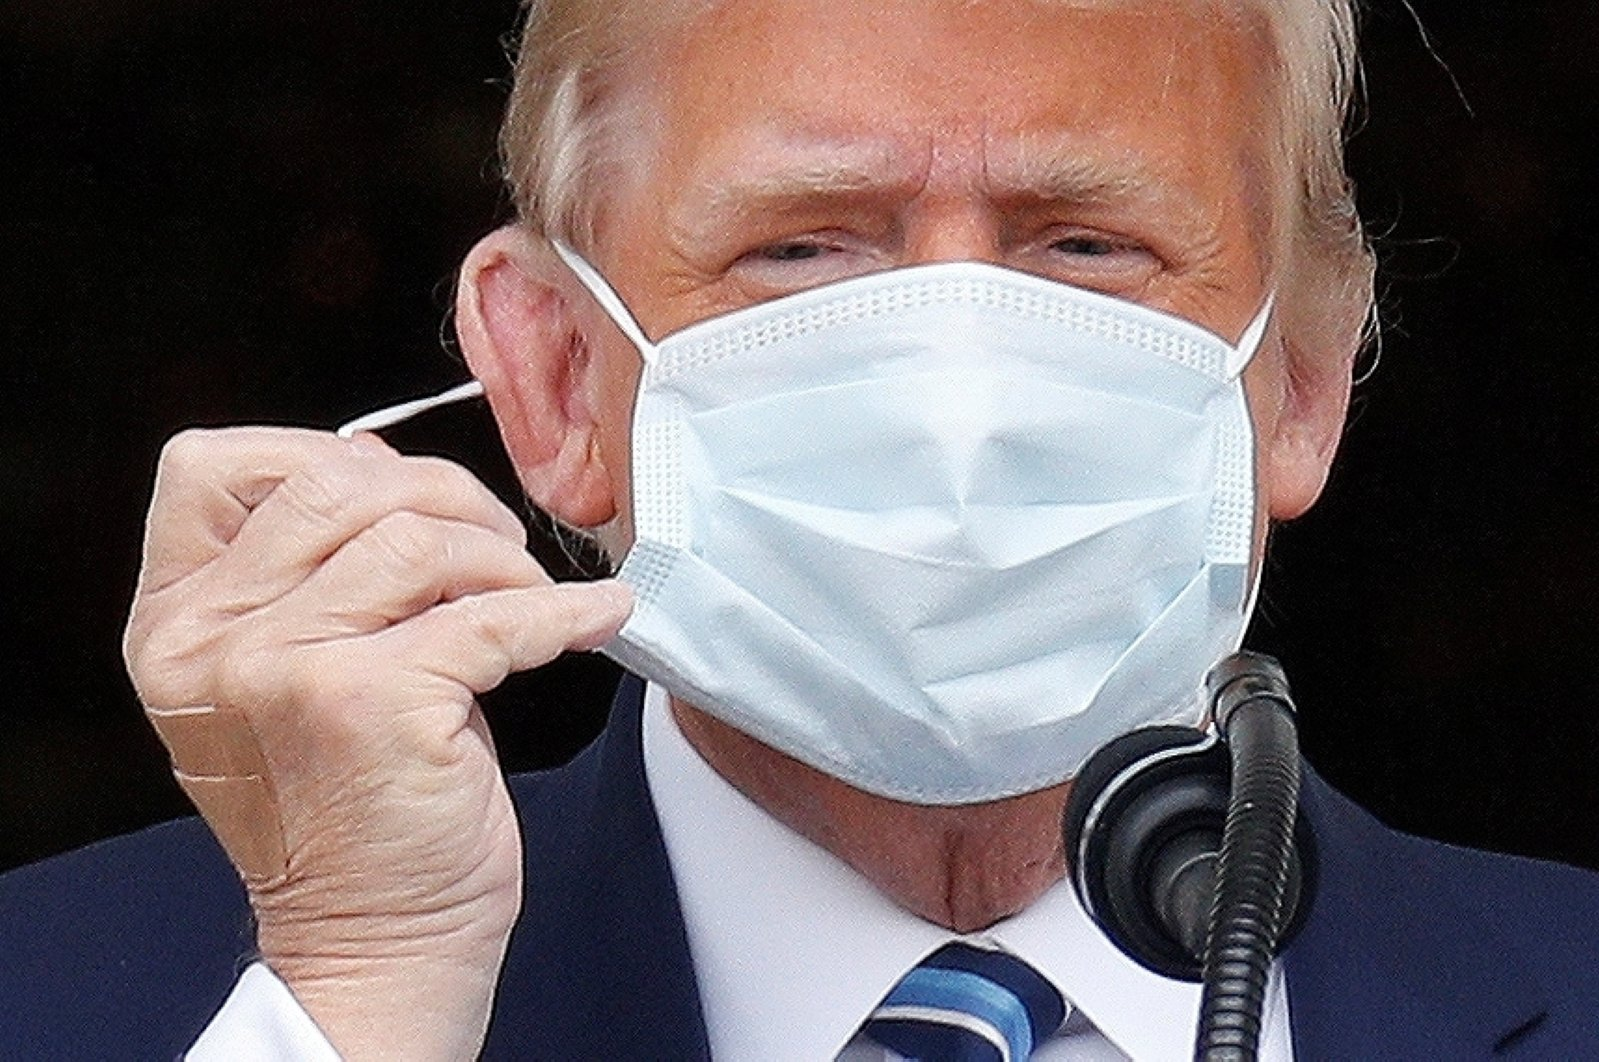 """U.S. President Donald Trump takes off his face mask as he comes out on a White House balcony to speak to supporters gathered on the South Lawn for a campaign rally that the White House is calling a """"peaceful protest"""" in Washington, U.S., Oct. 10, 2020.  (Reuters Photo)"""